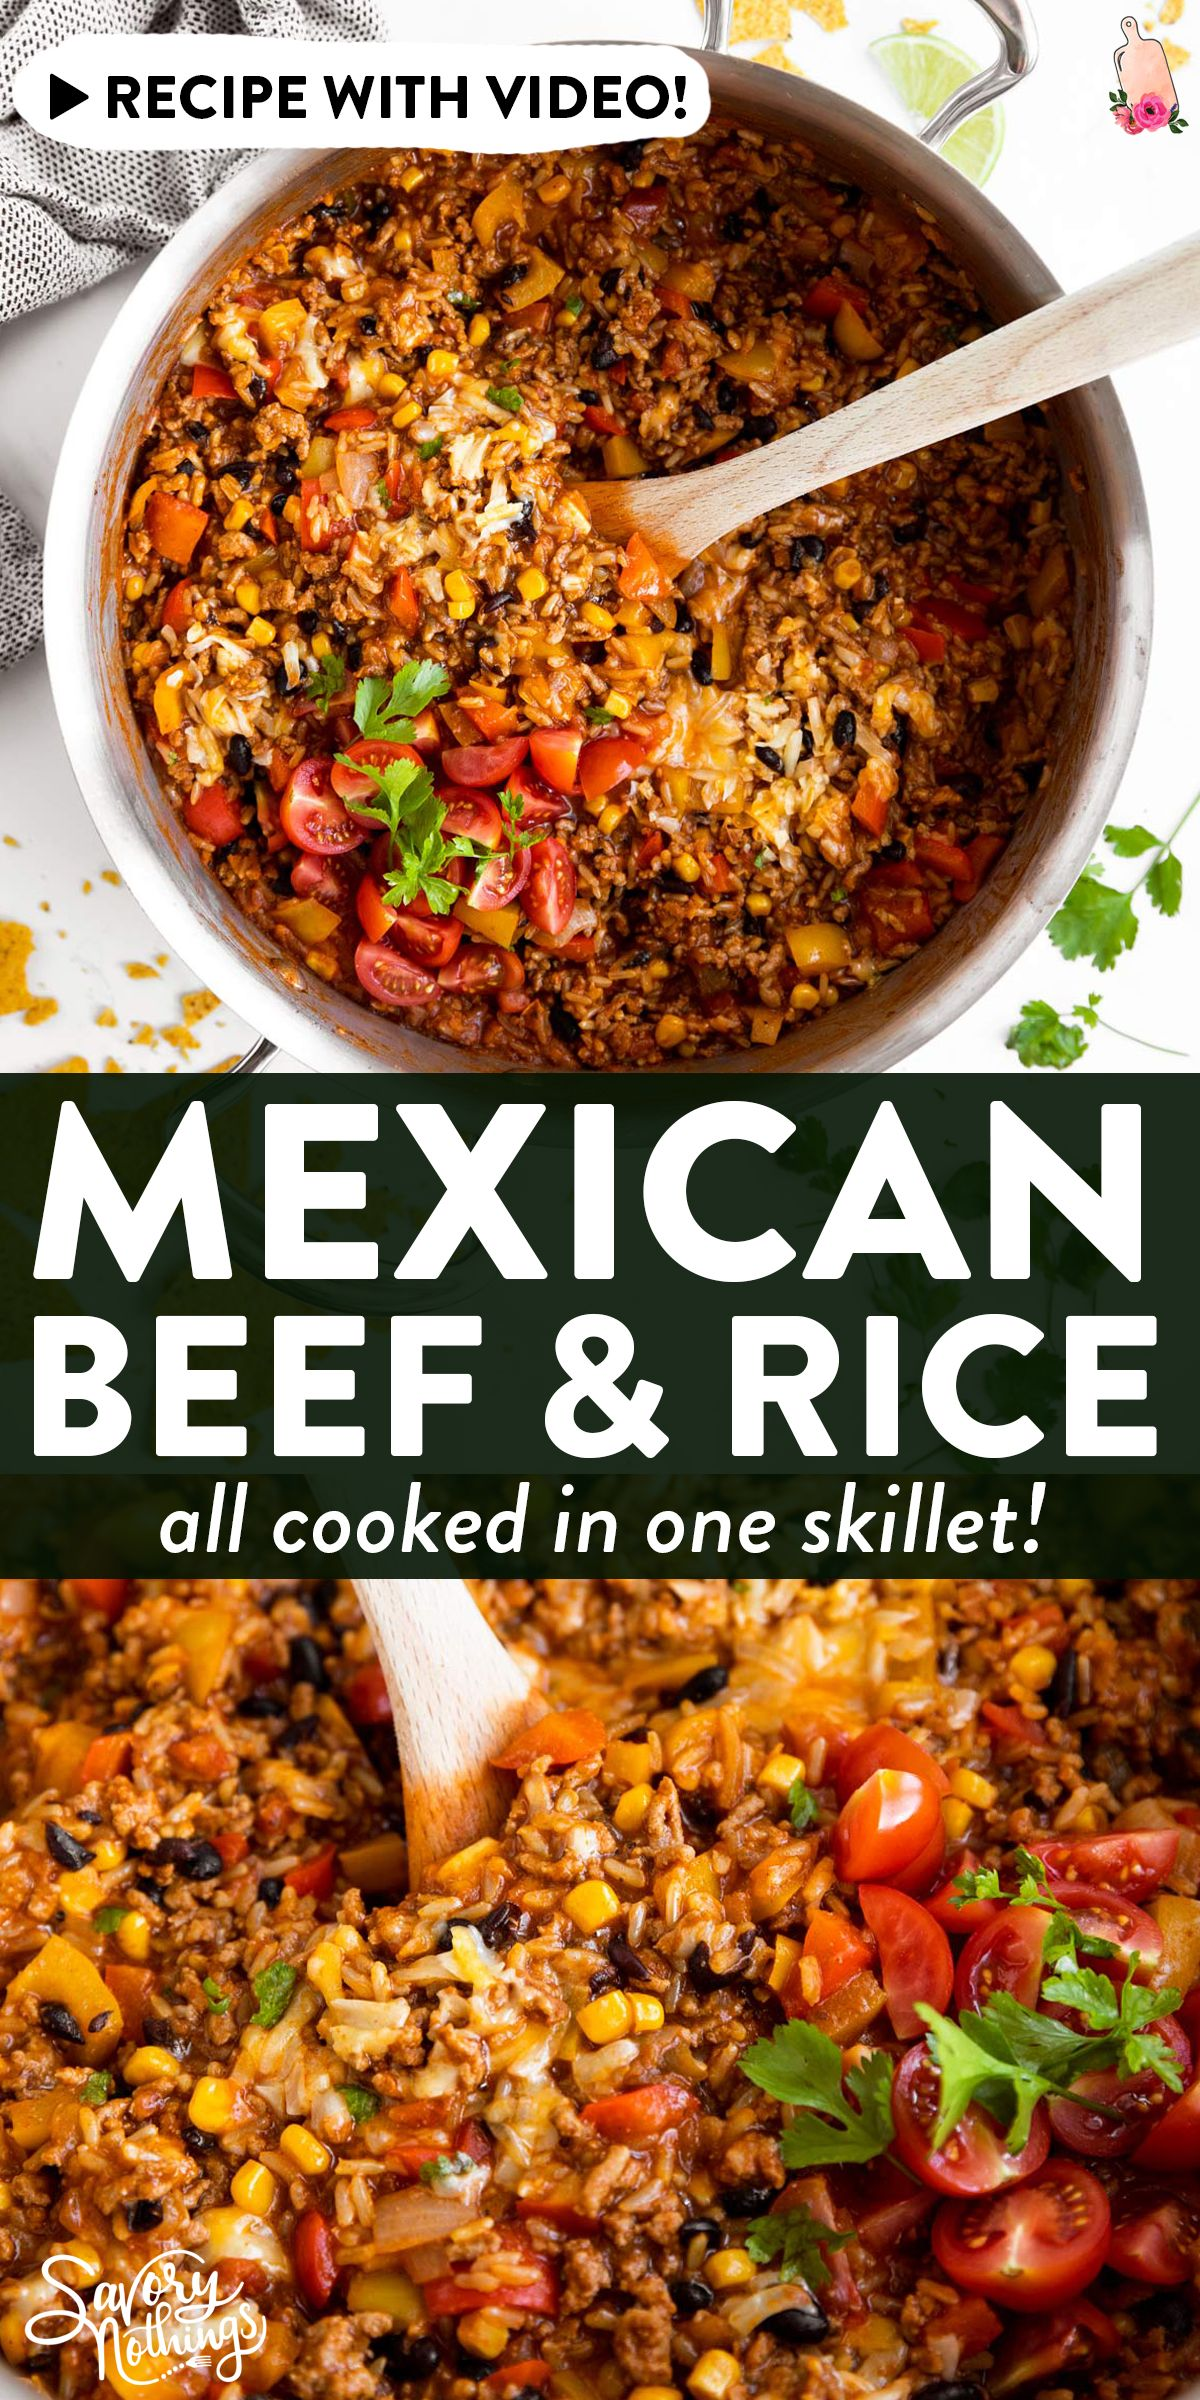 Ever Ask Yourself What To Make With Ground Beef And Rice This Mexican Beef And Rice Skillet Is In 2020 Beef Recipes Easy Mexican Food Recipes Authentic Beef And Rice